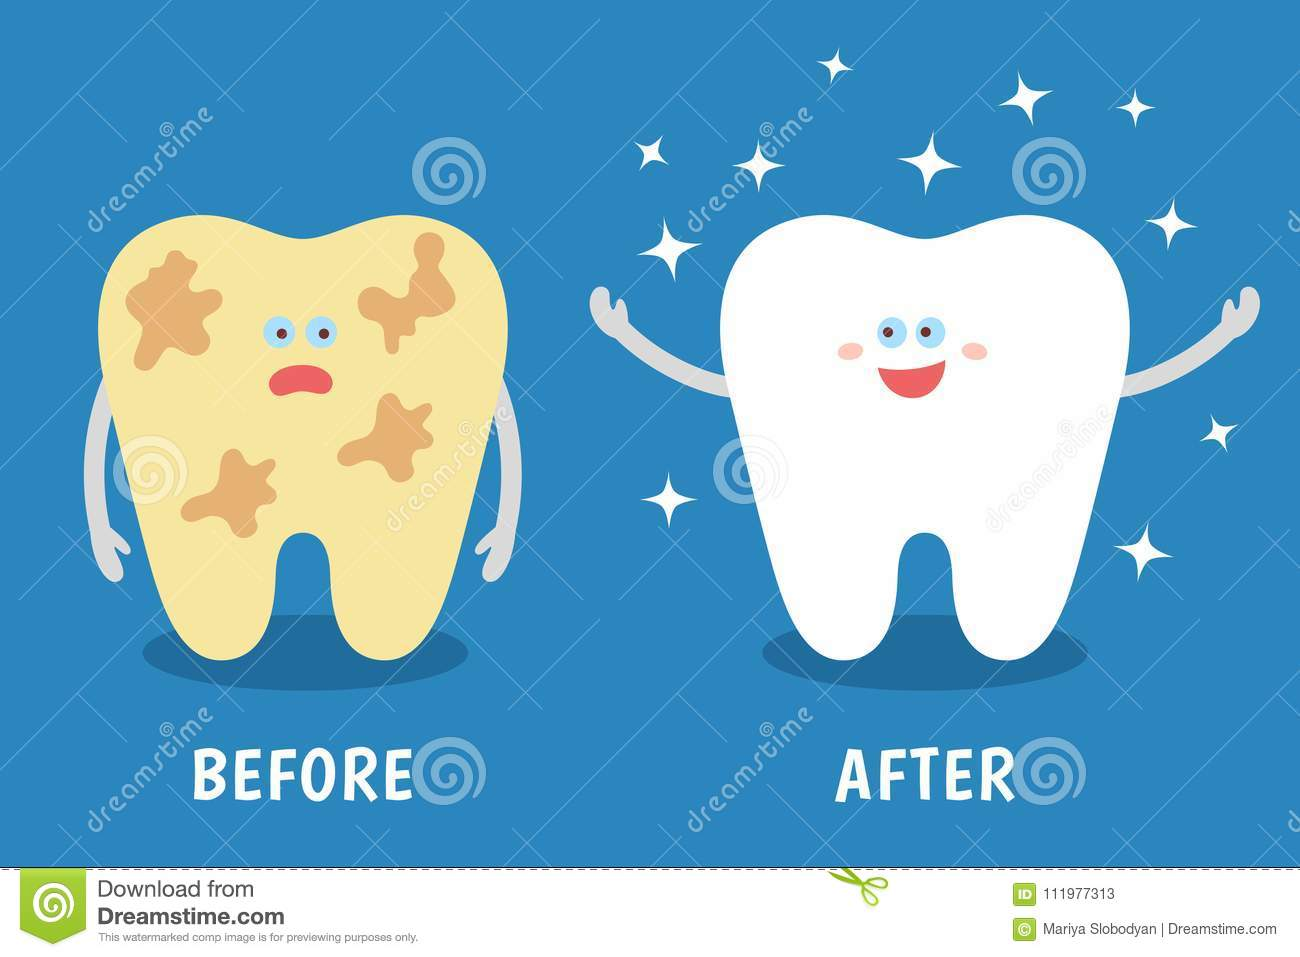 Cartoon tooth before and after cleaning or whitening or dental procedures.